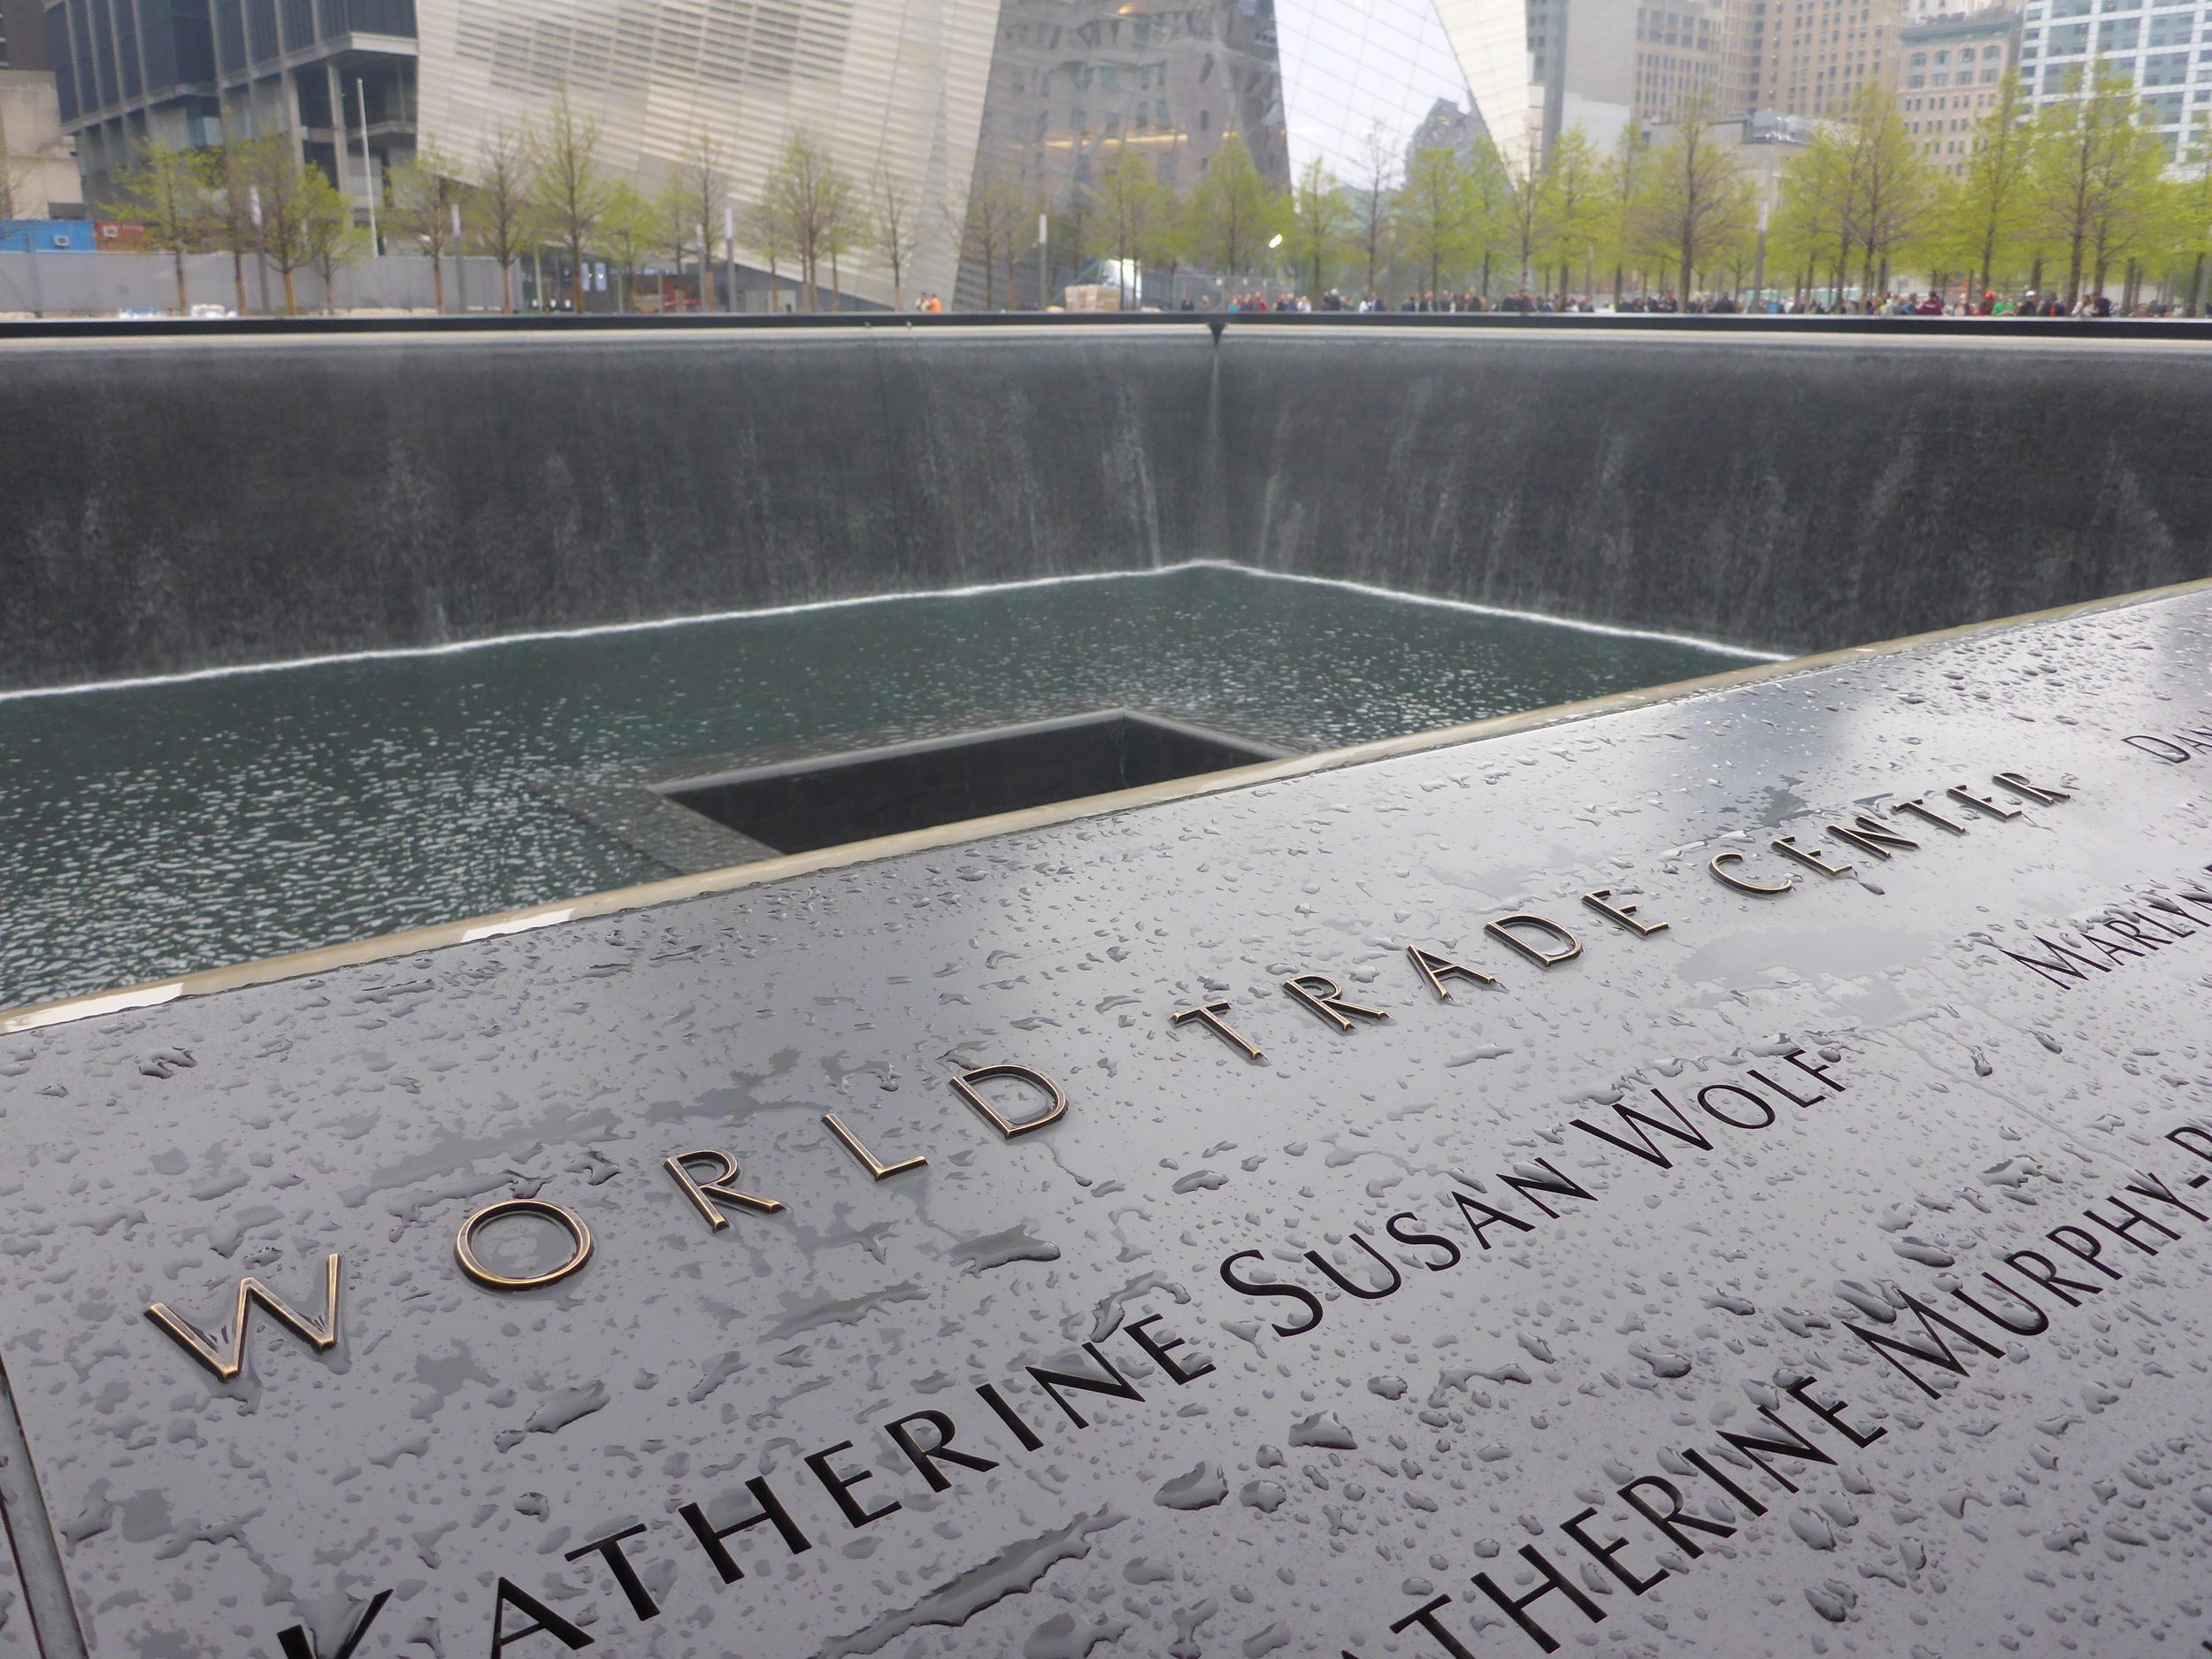 Another view of the World Trade Center Memorial.